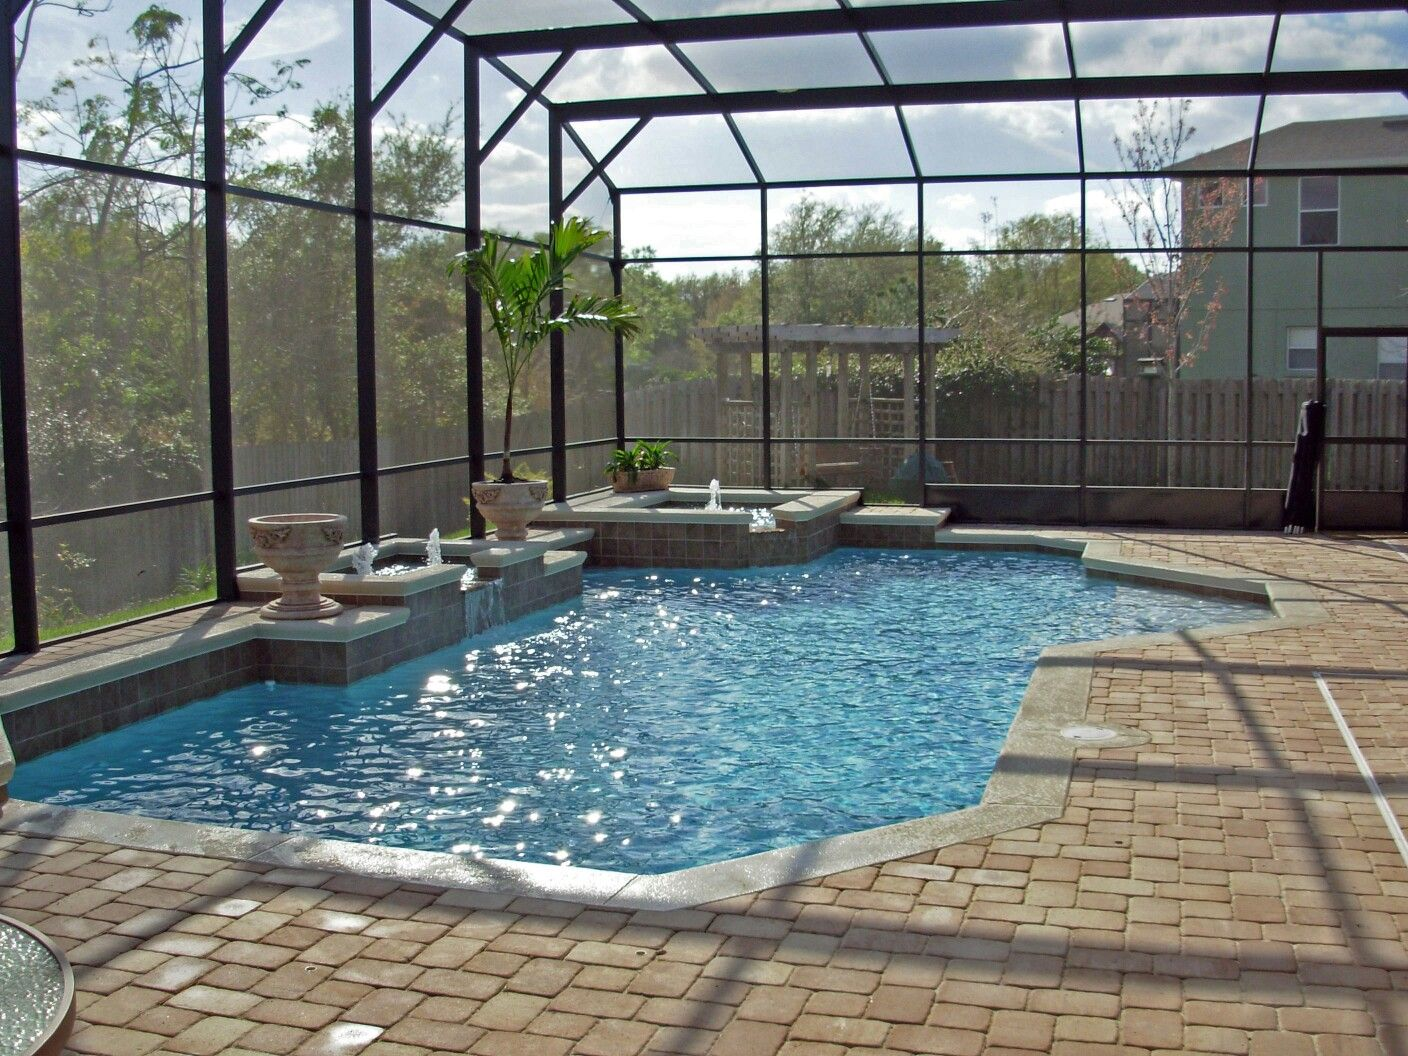 Water Features Are So Relaxing Swimming Pool Images Outside Pool Swimming Pools